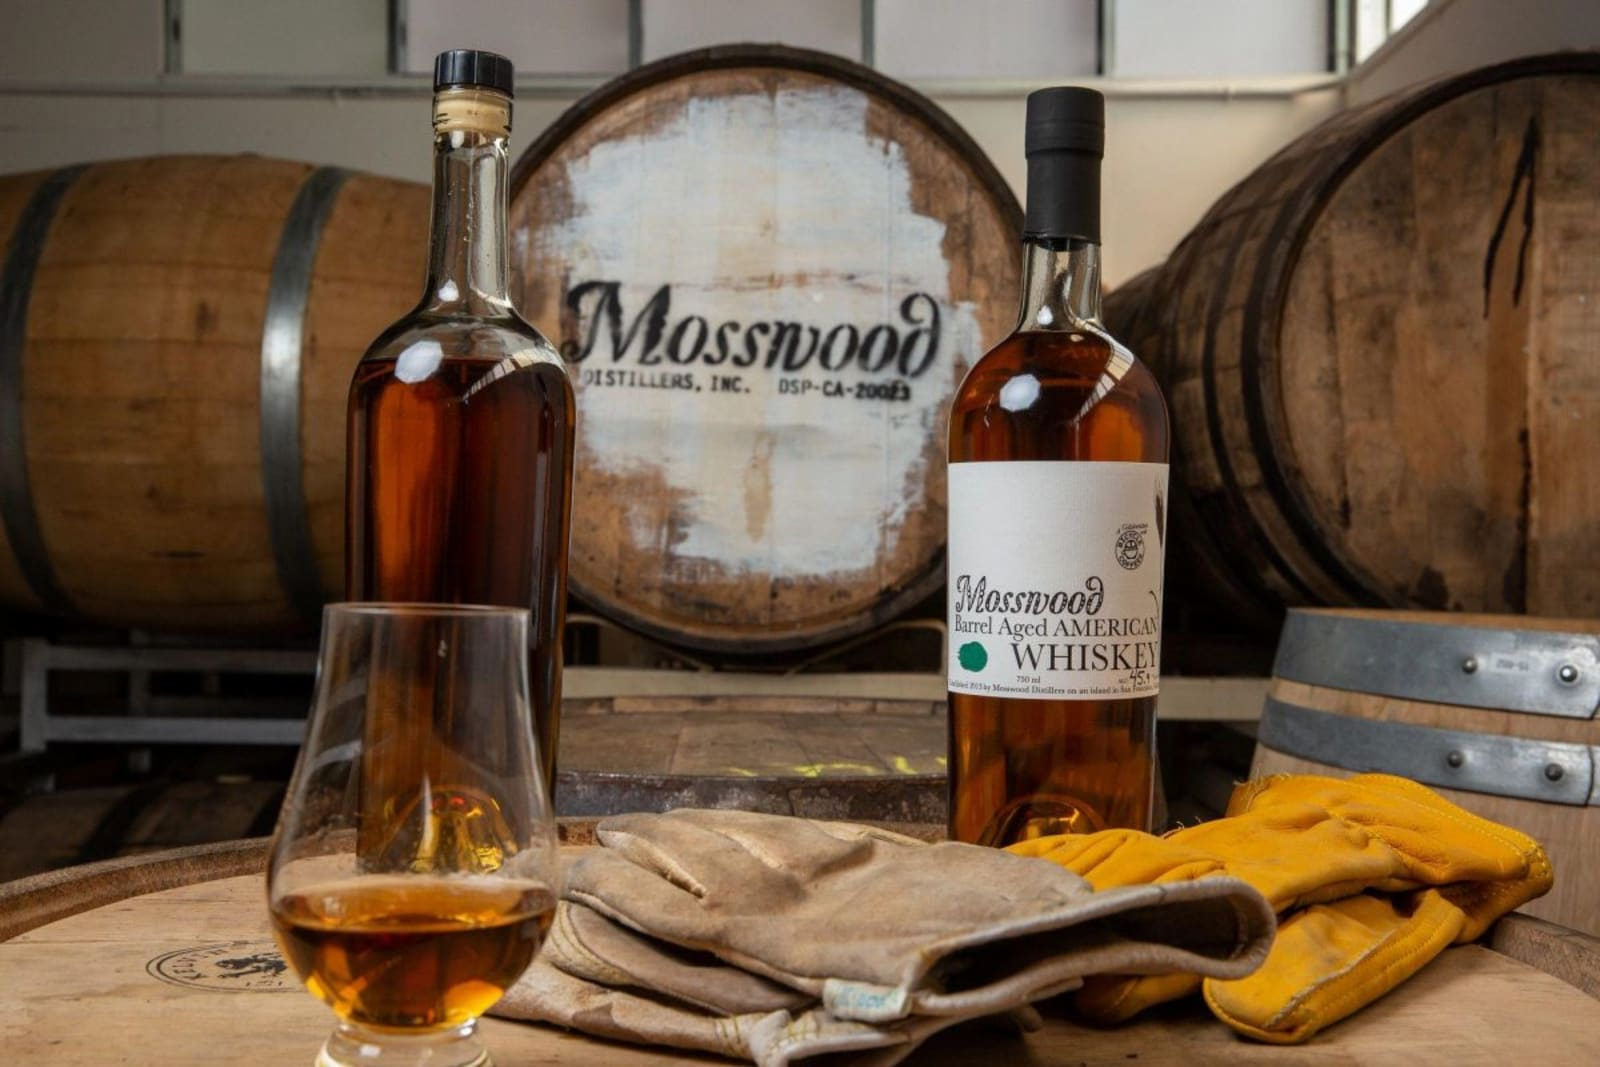 Gifts at Mosswood Distillers